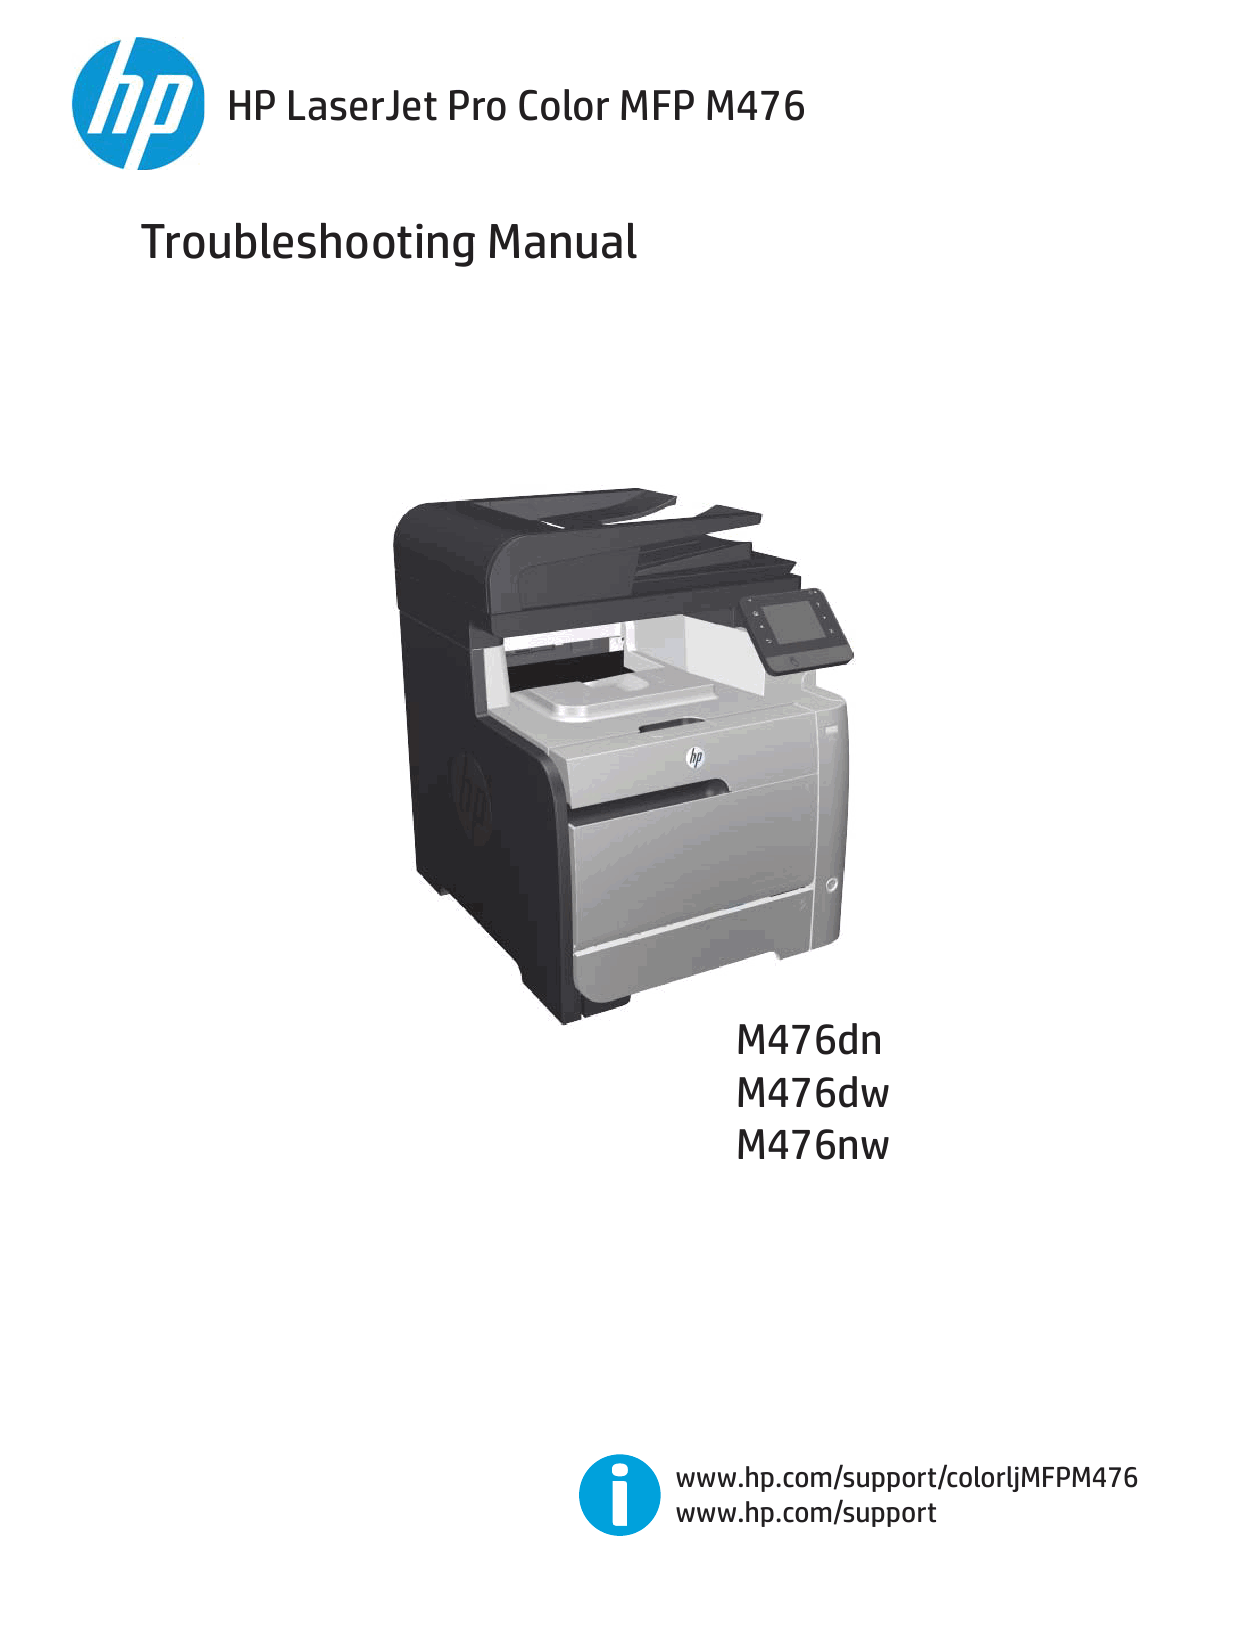 HP ColorLaserJet Pro-MFP M476 dn dw nw Troubleshooting Manual PDF download-1